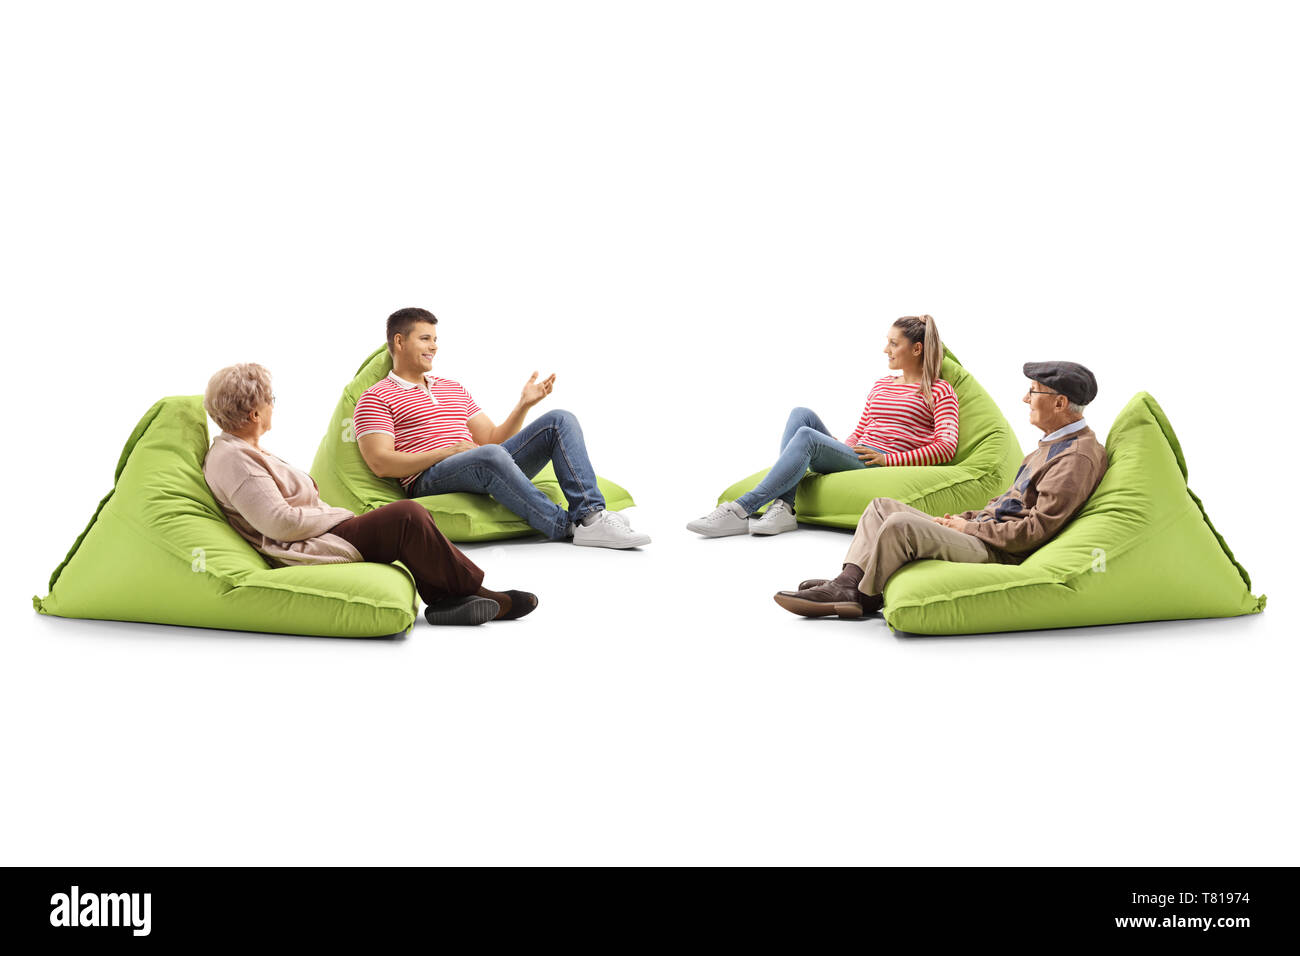 Young and senior people sitting on bean bag chairs and talking isolated on white background - Stock Image